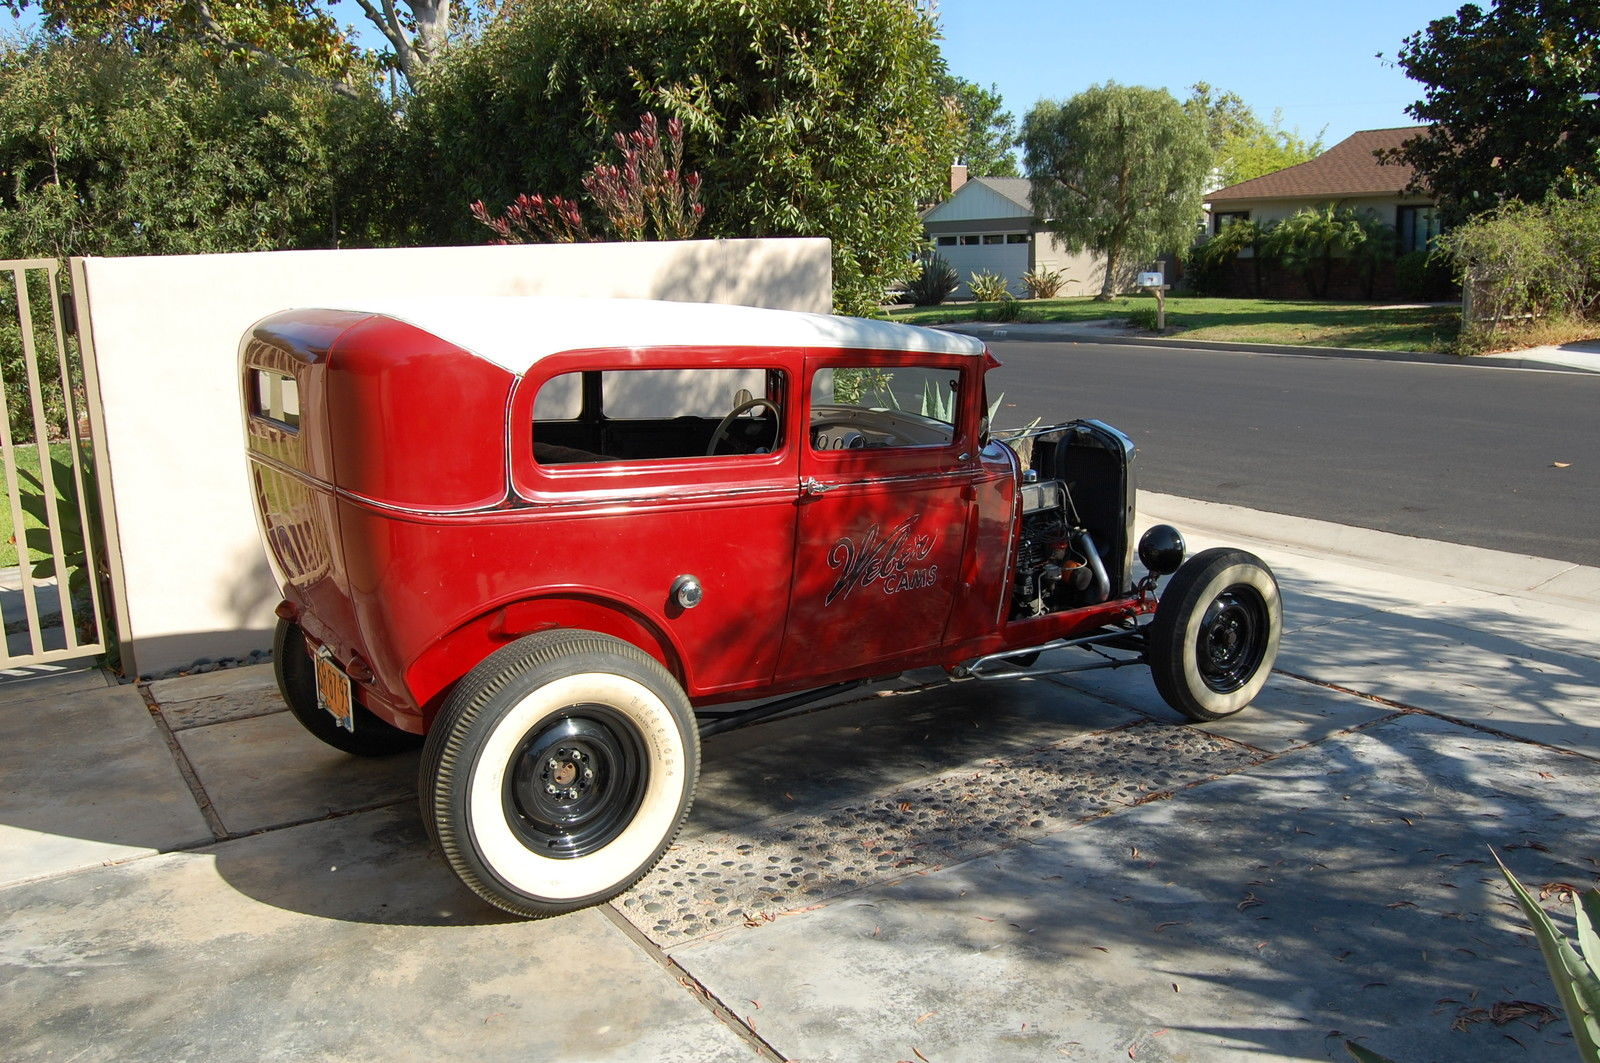 hight resolution of restored vintage 1930 ford model a sedan hot rod 30 w 32 dash no reserve